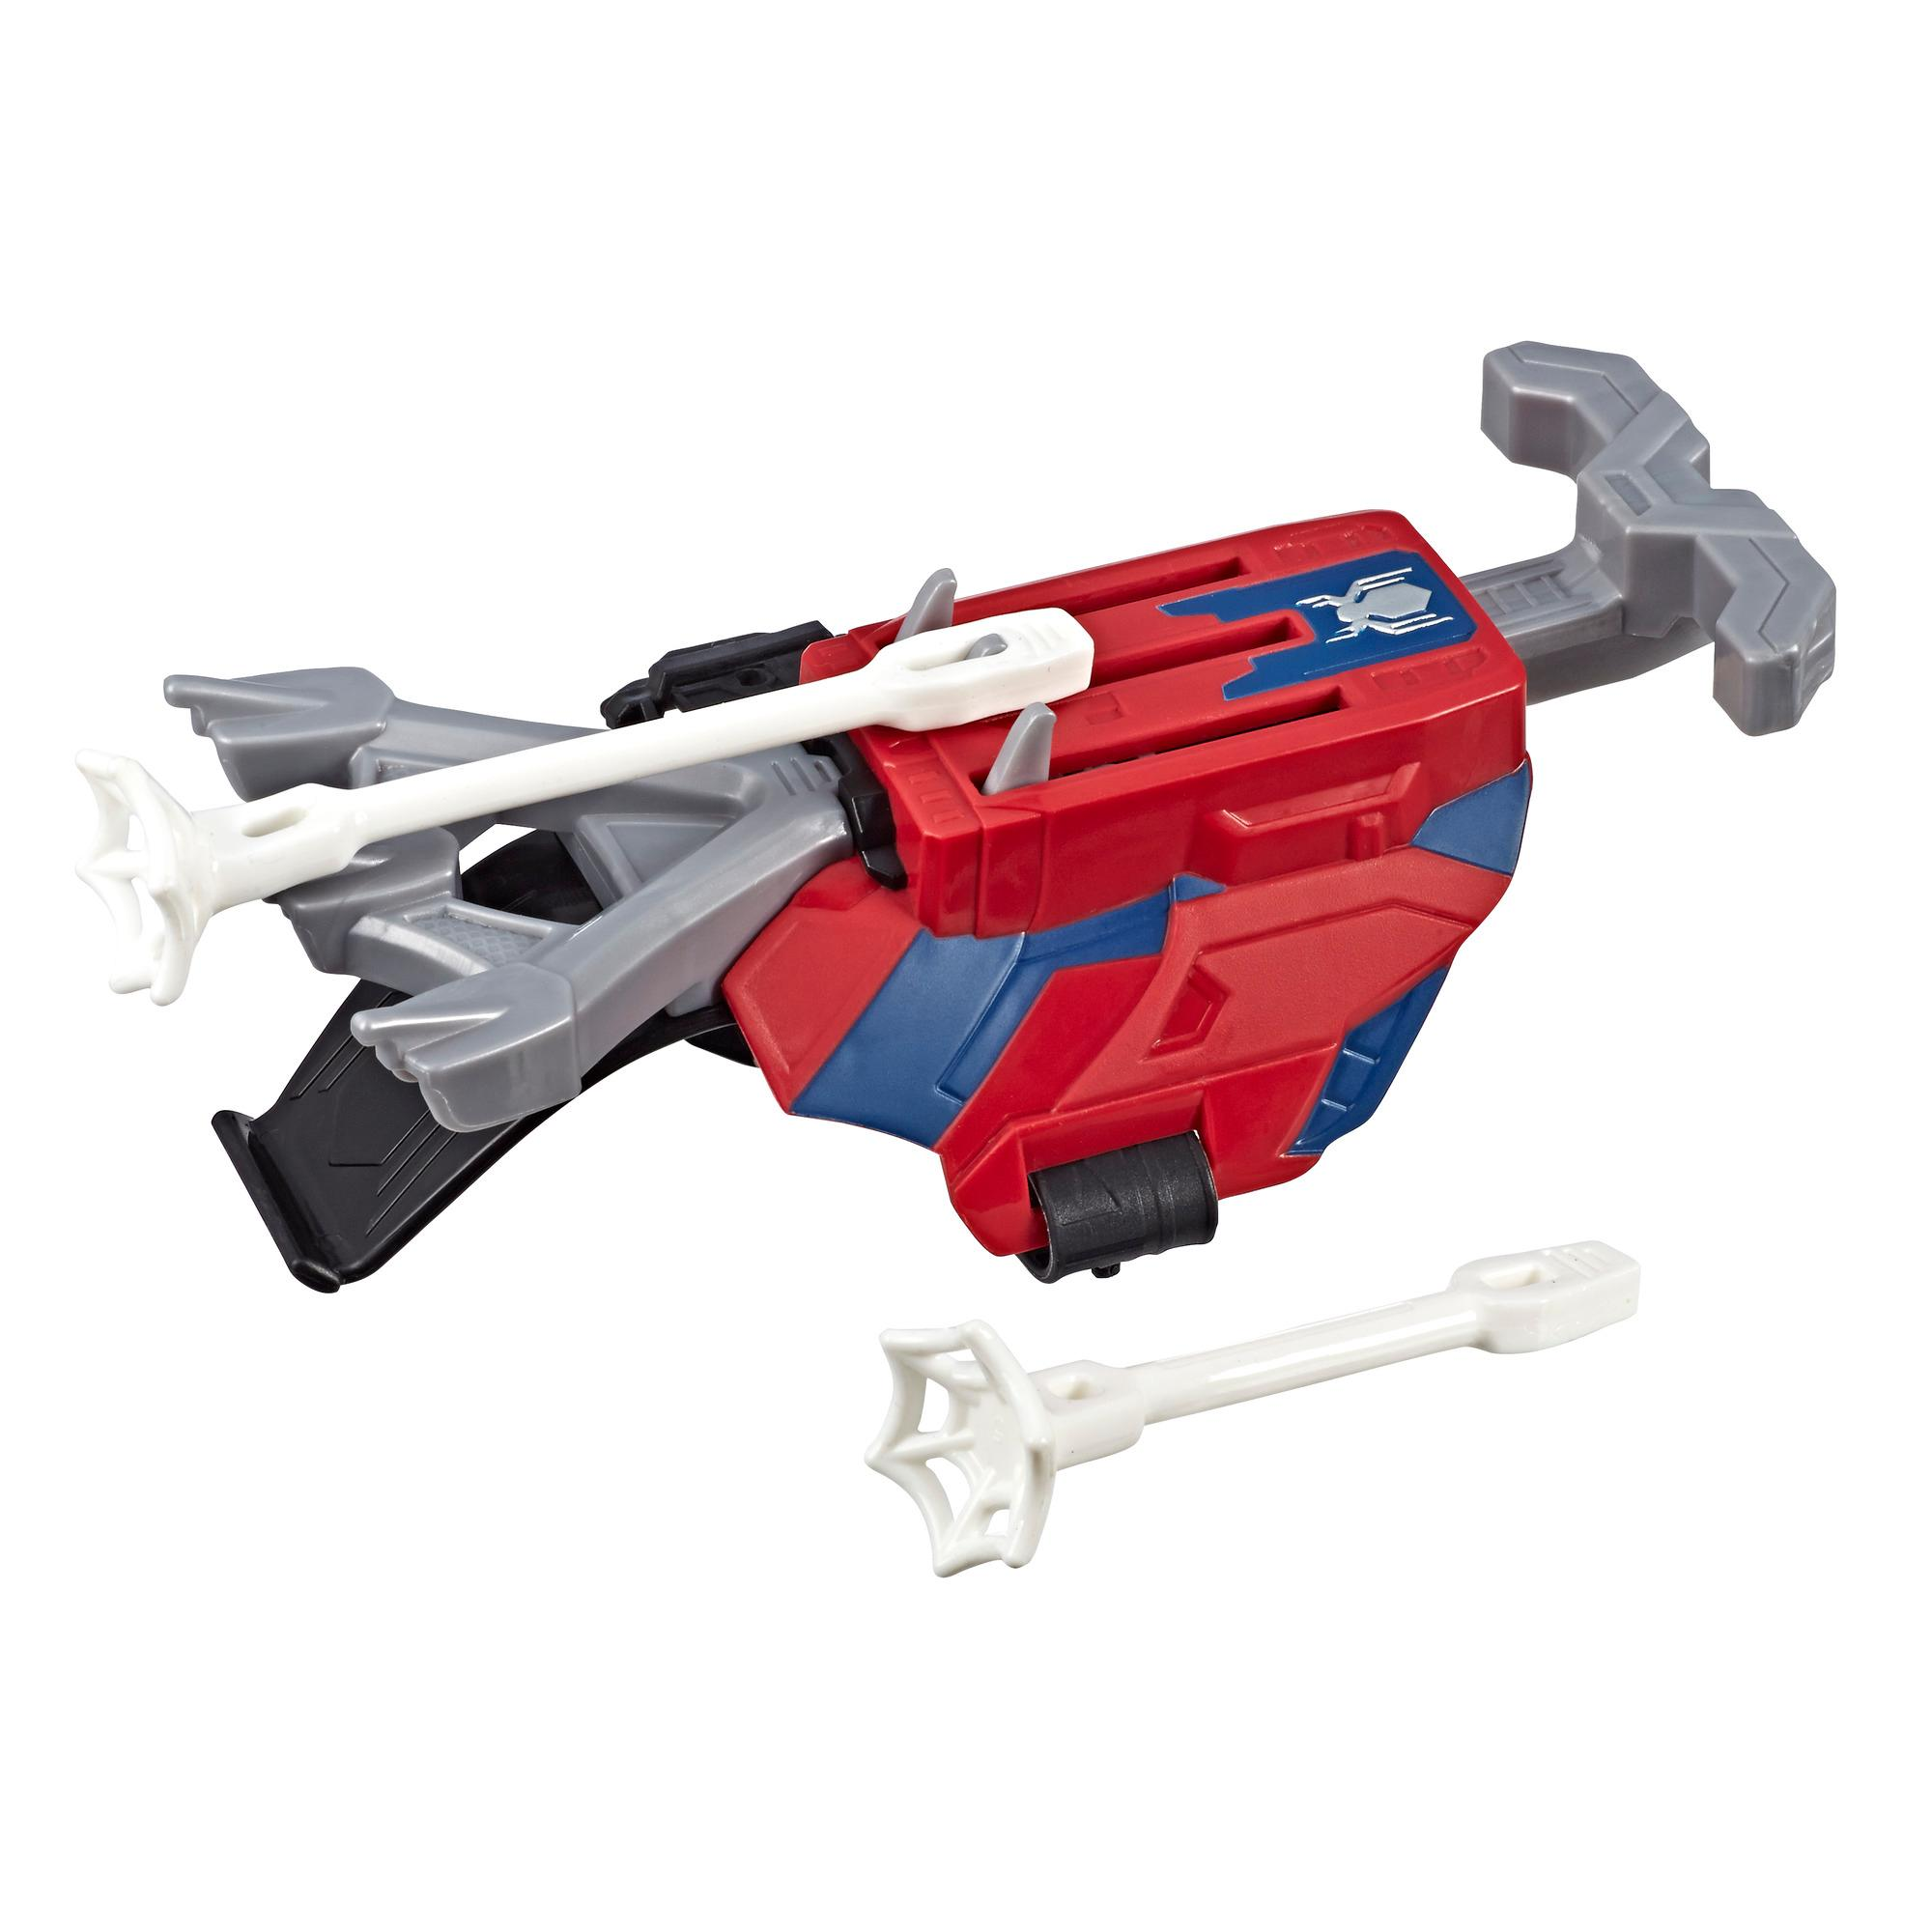 Spider-Man Web Shots Scatterblast Blaster Toy for Kids Ages 5 and Up